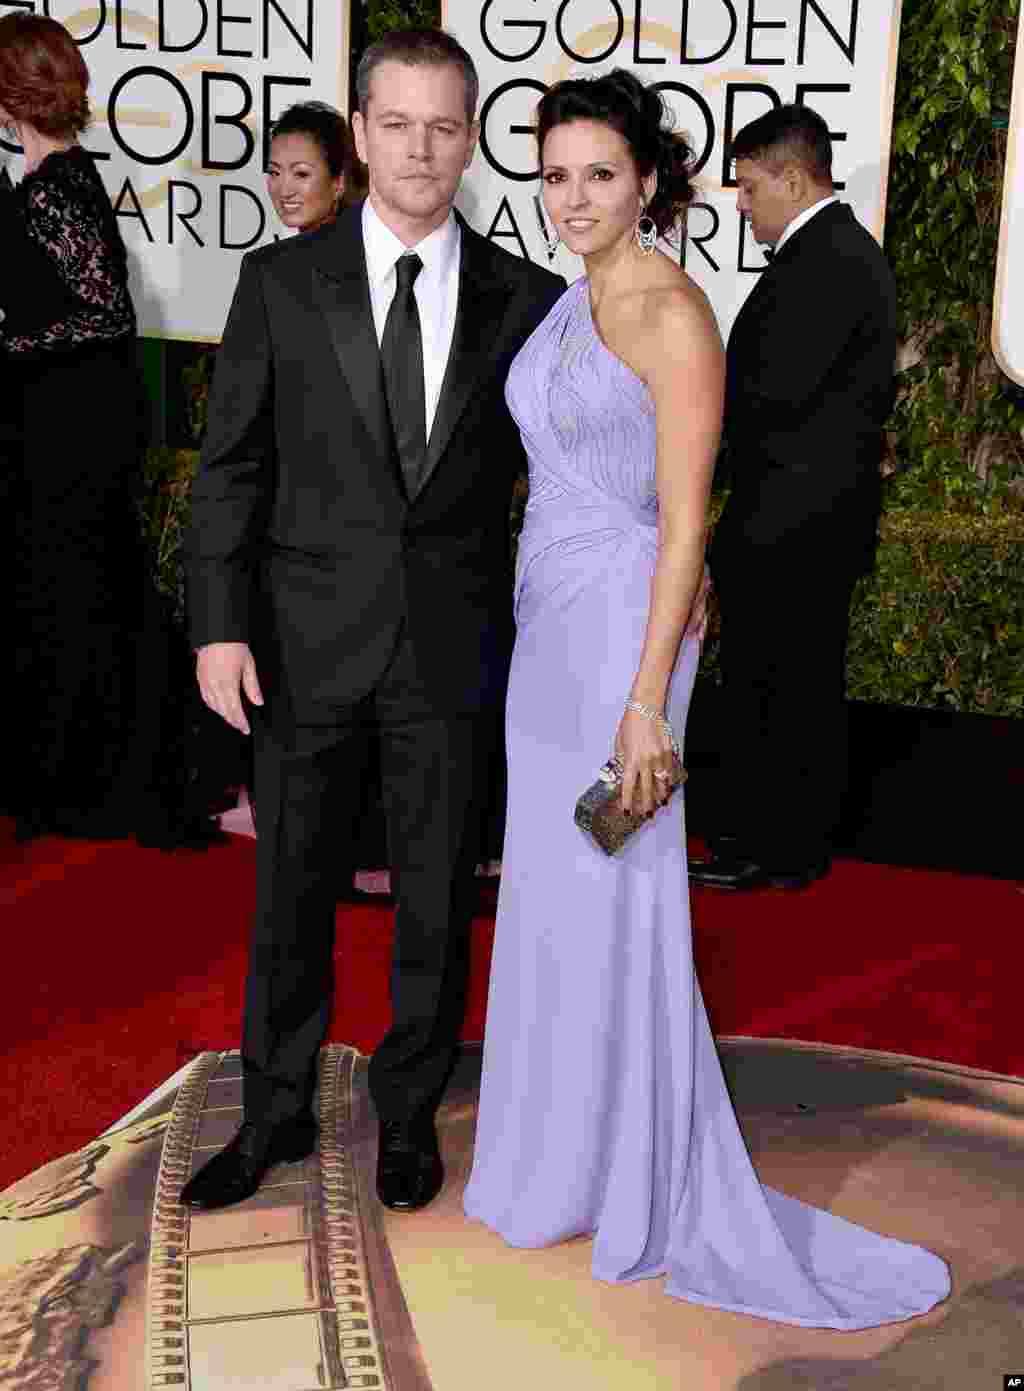 Matt Damon, left, and Luciana Barroso arrive at the 73rd annual Golden Globe Awards on Jan. 10, 2016, at the Beverly Hilton Hotel in Beverly Hills, Calif.